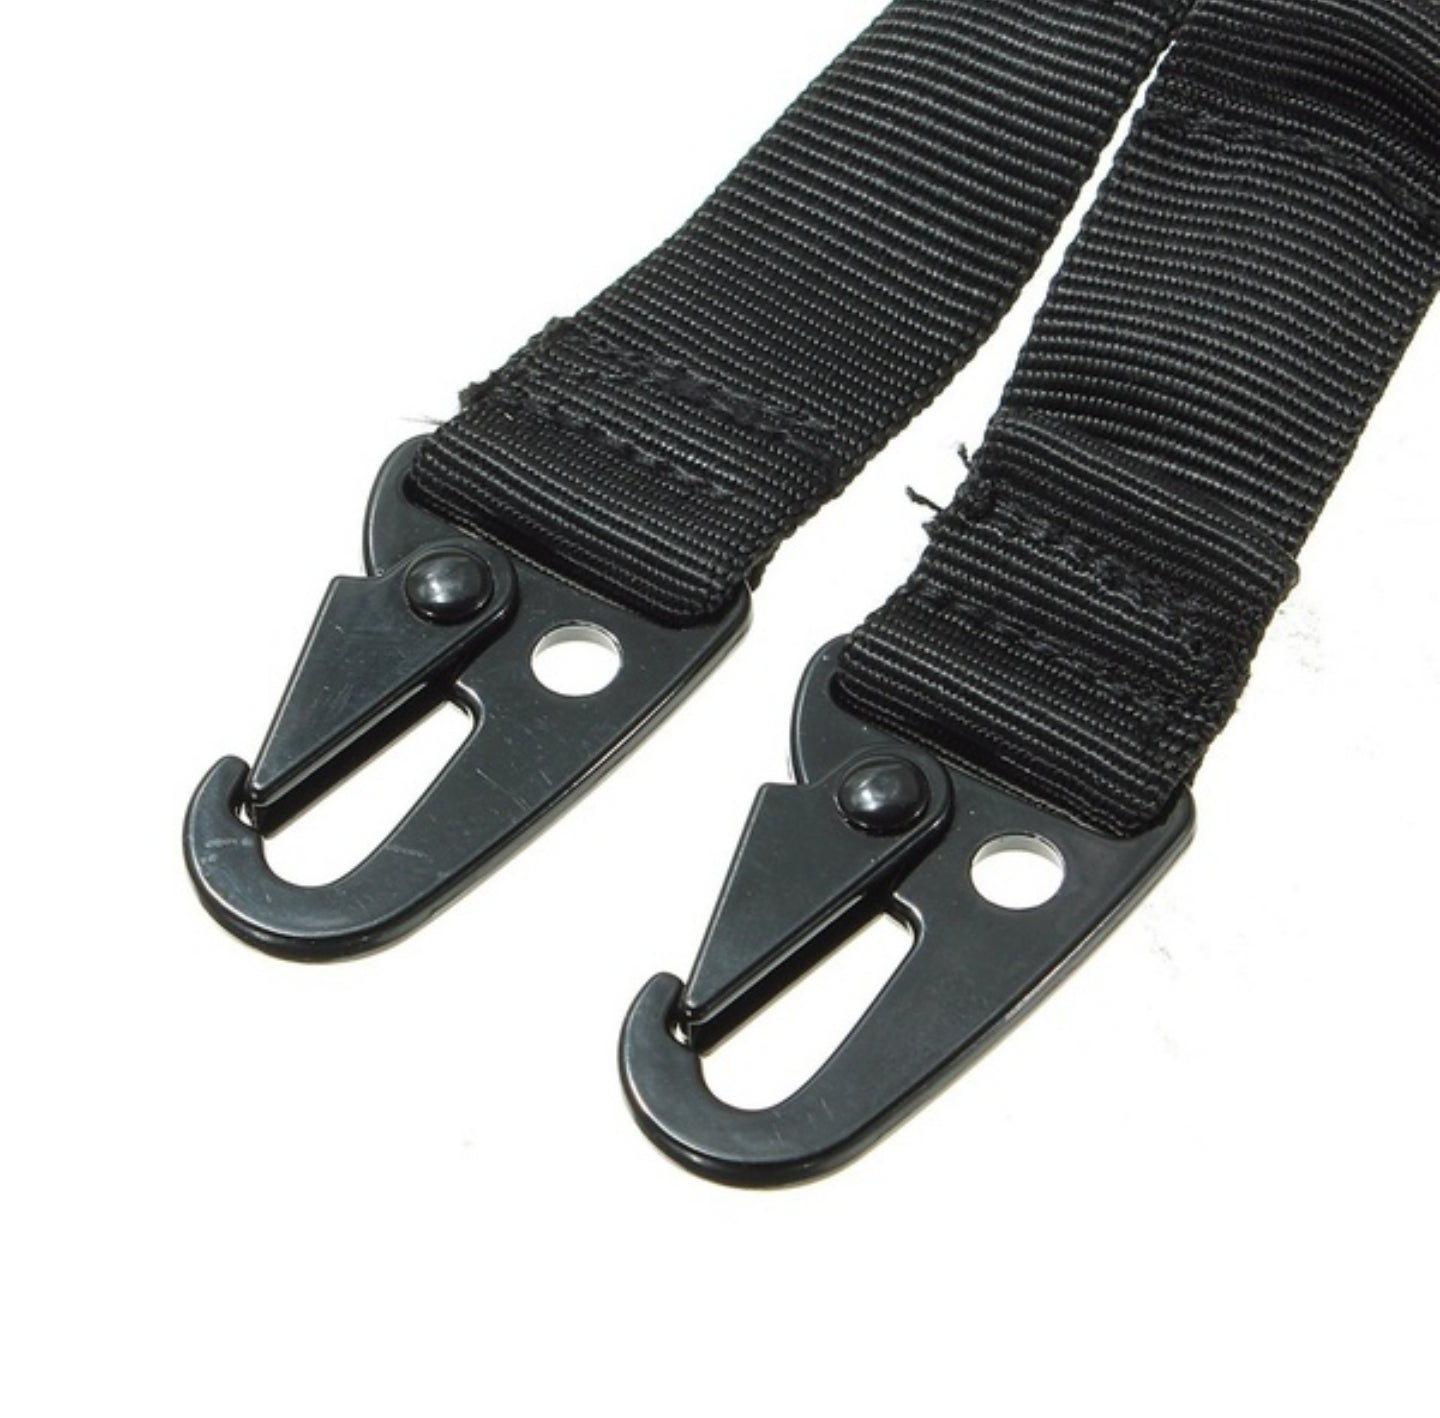 Rifle sling ... double point